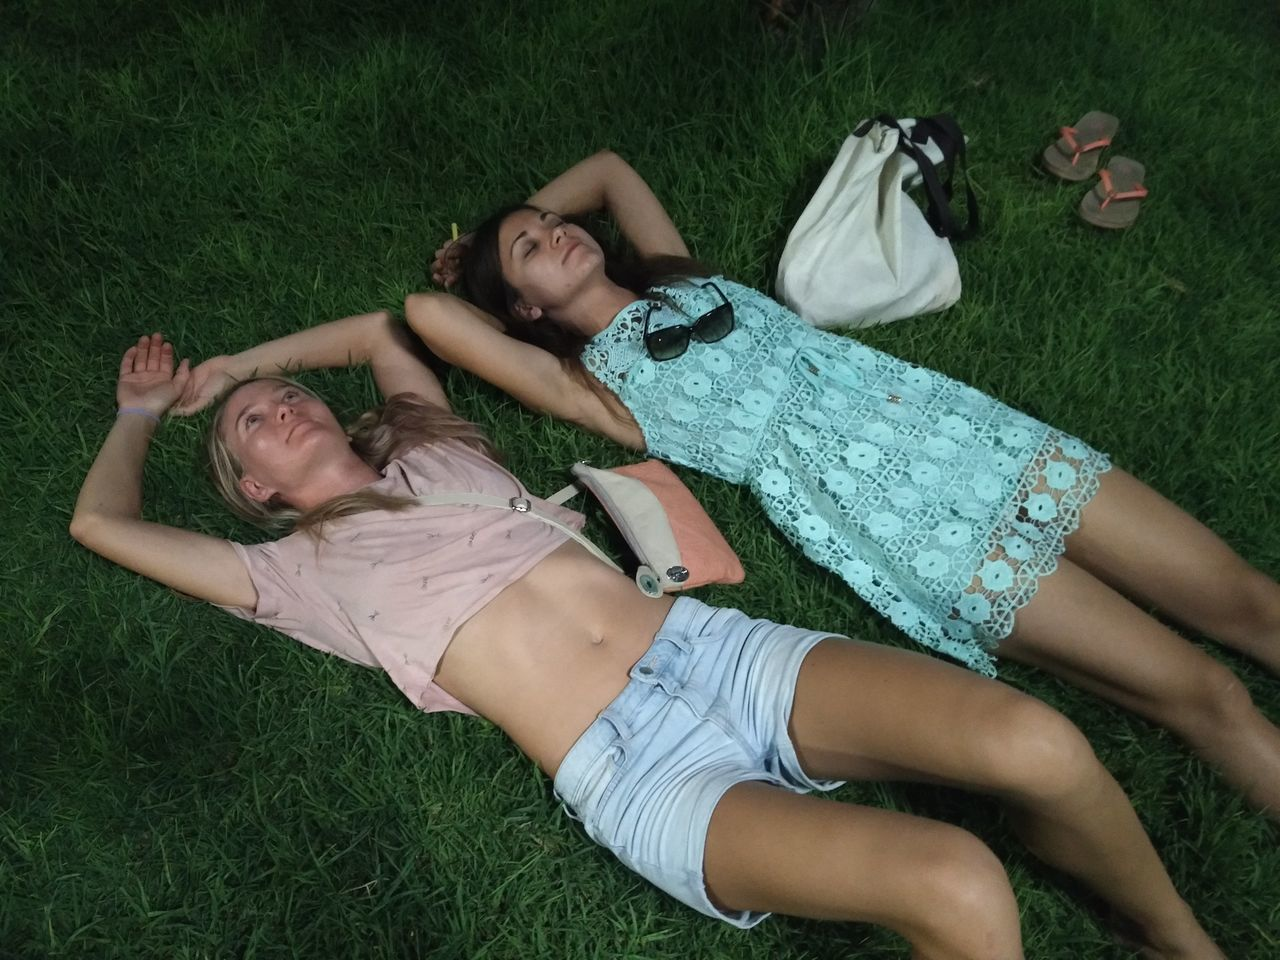 Two Young Women Relaxing On Grass